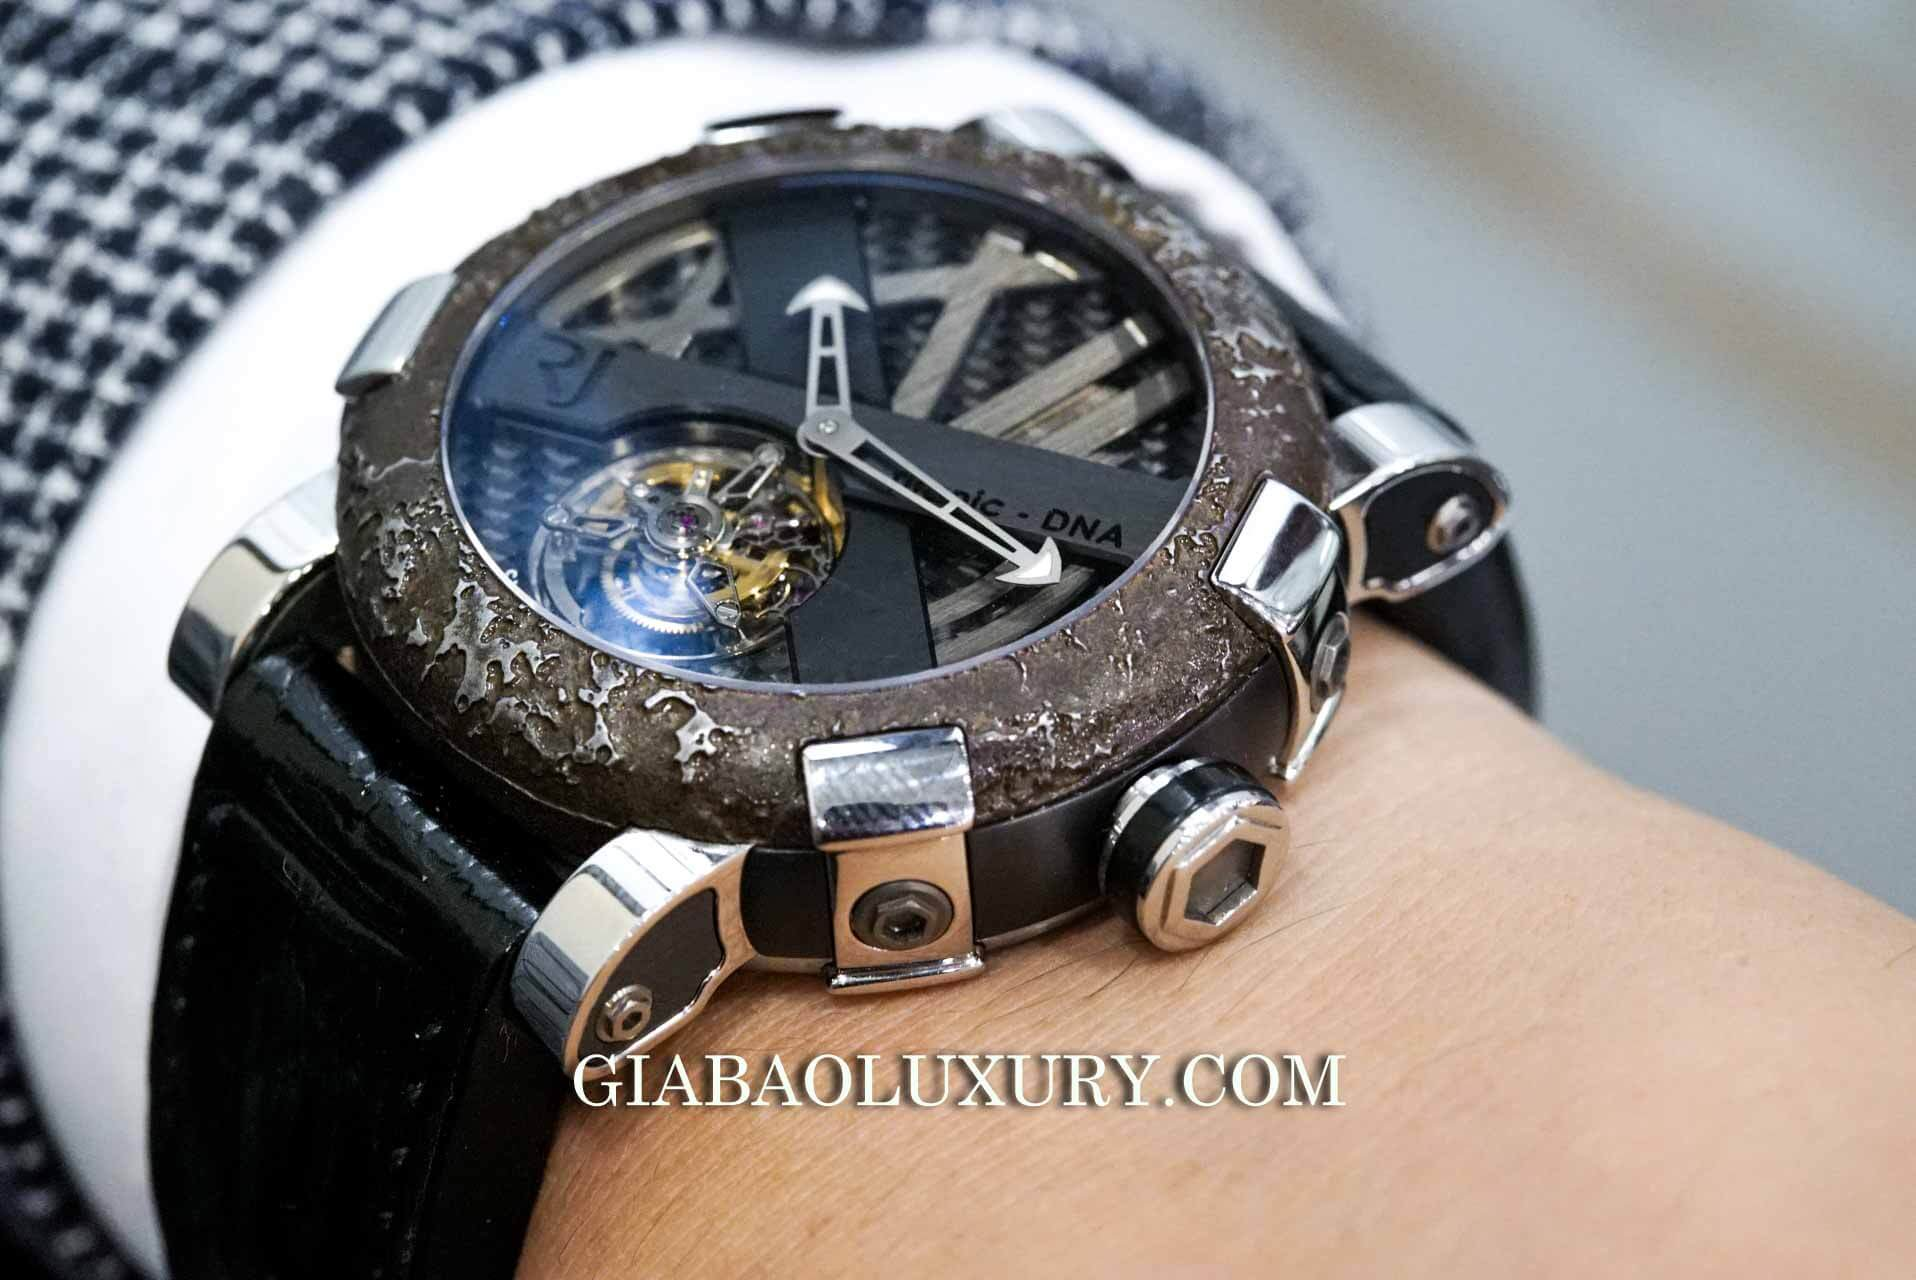 Đồng Hồ Romain Jerome Titanic DNA Steel Tourbillon